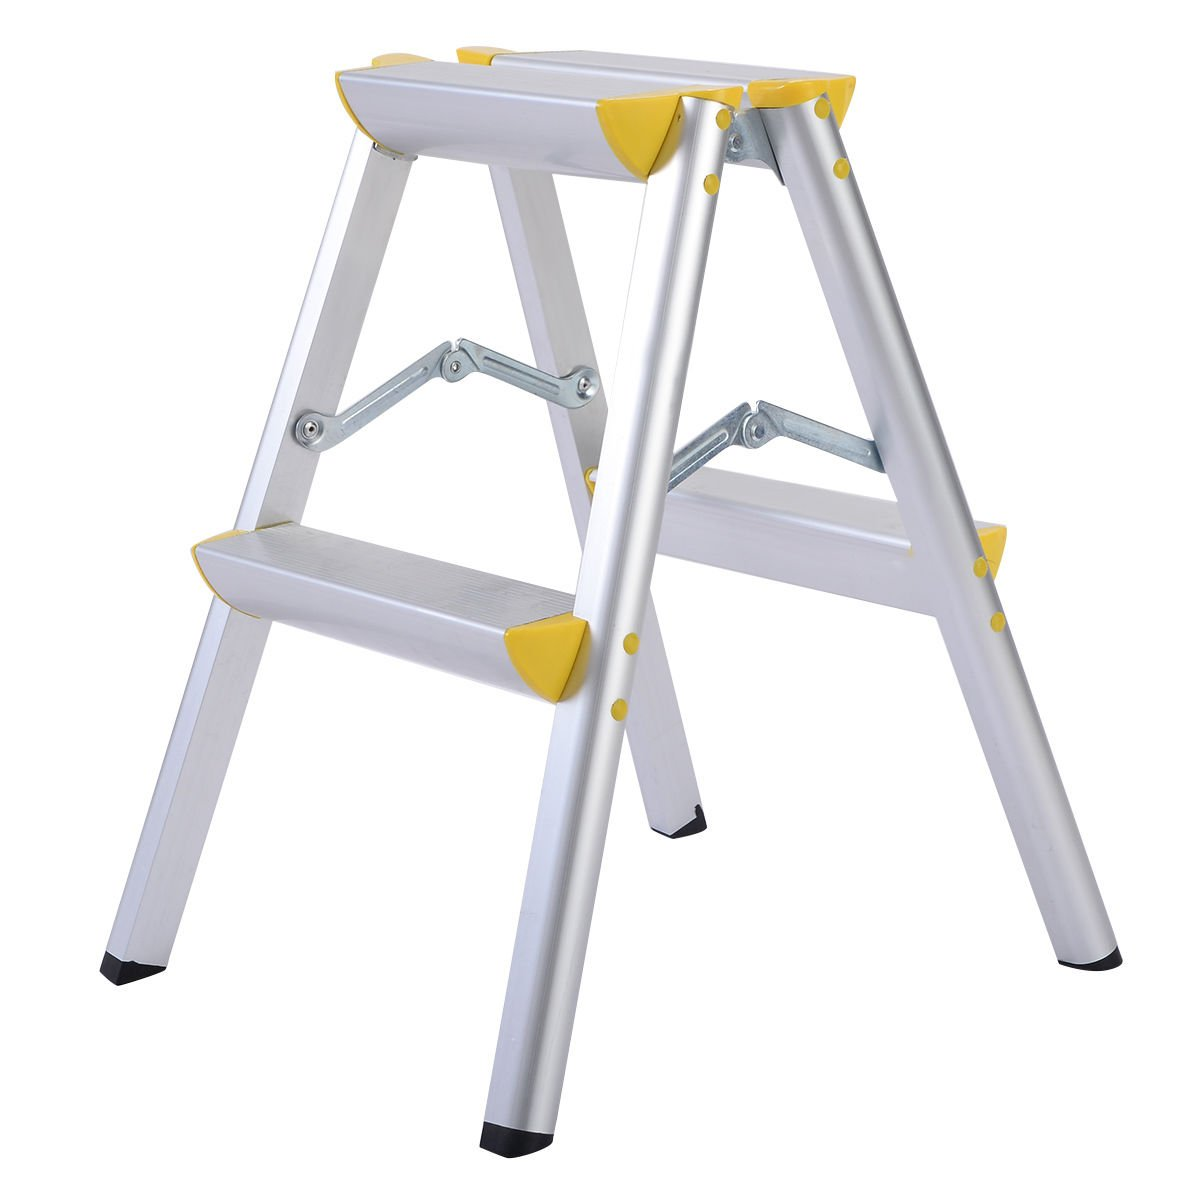 Good concept 2 Step New Ladder Folding Aluminum Platform Work Stool 330 lbs Load Capacity